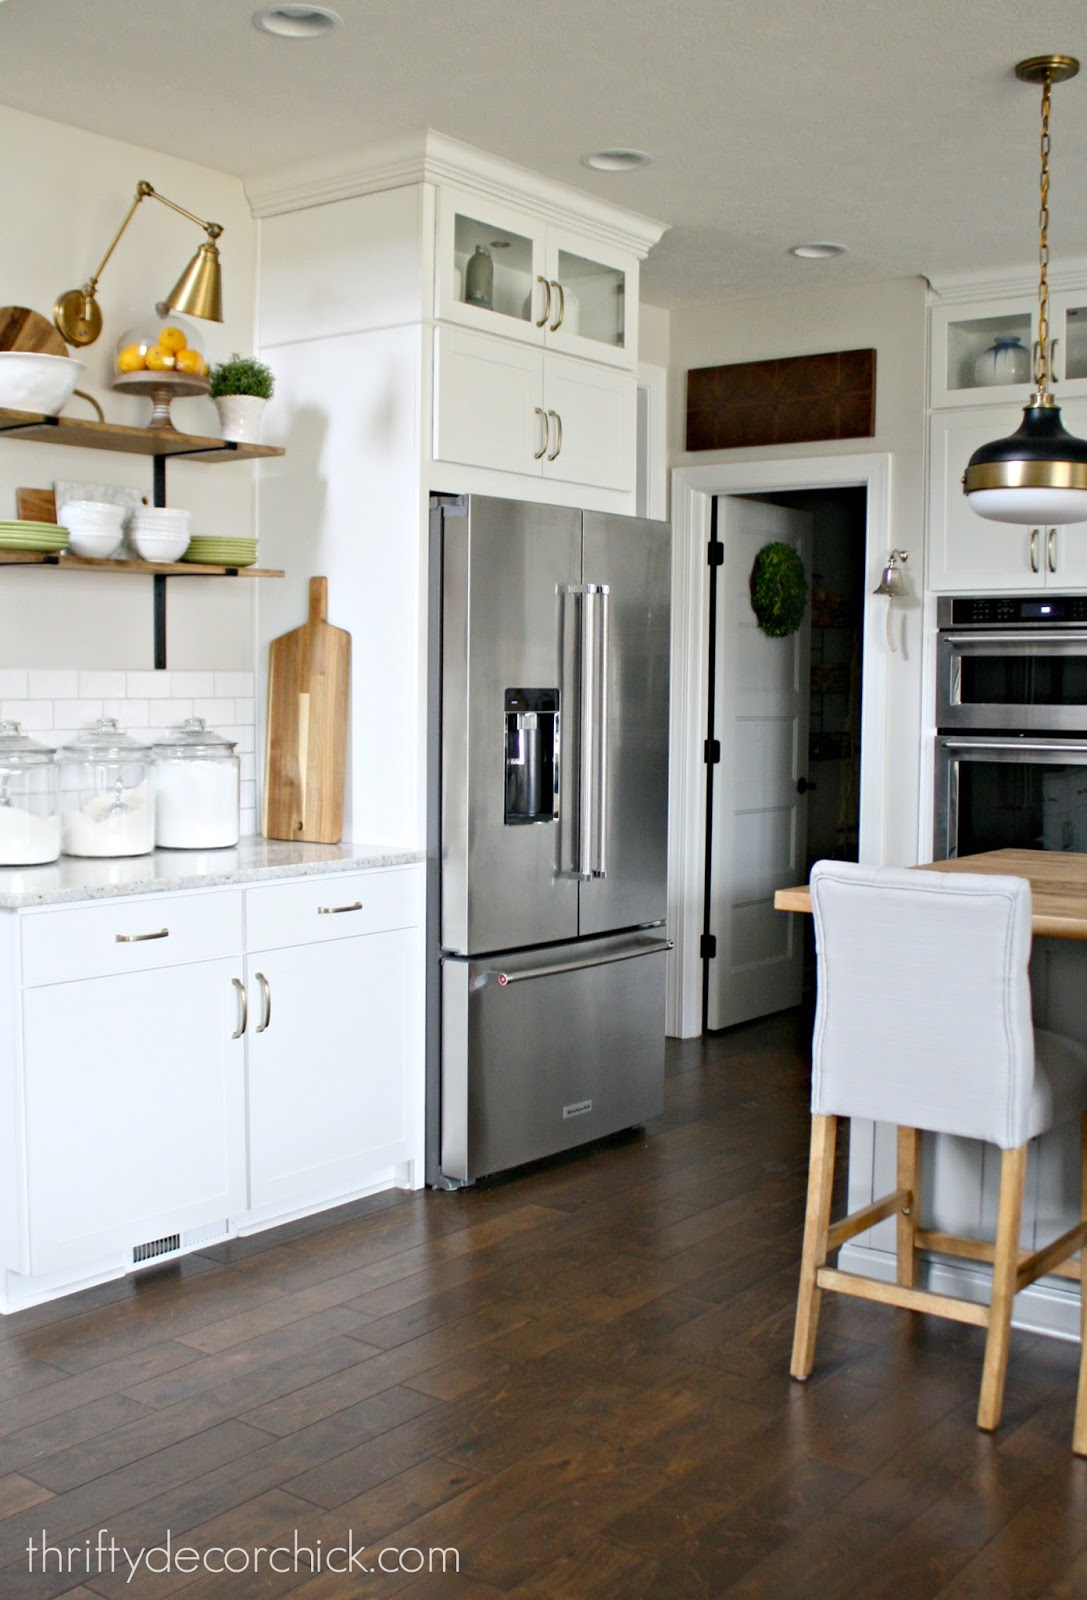 How to hang open shelves in kitchen